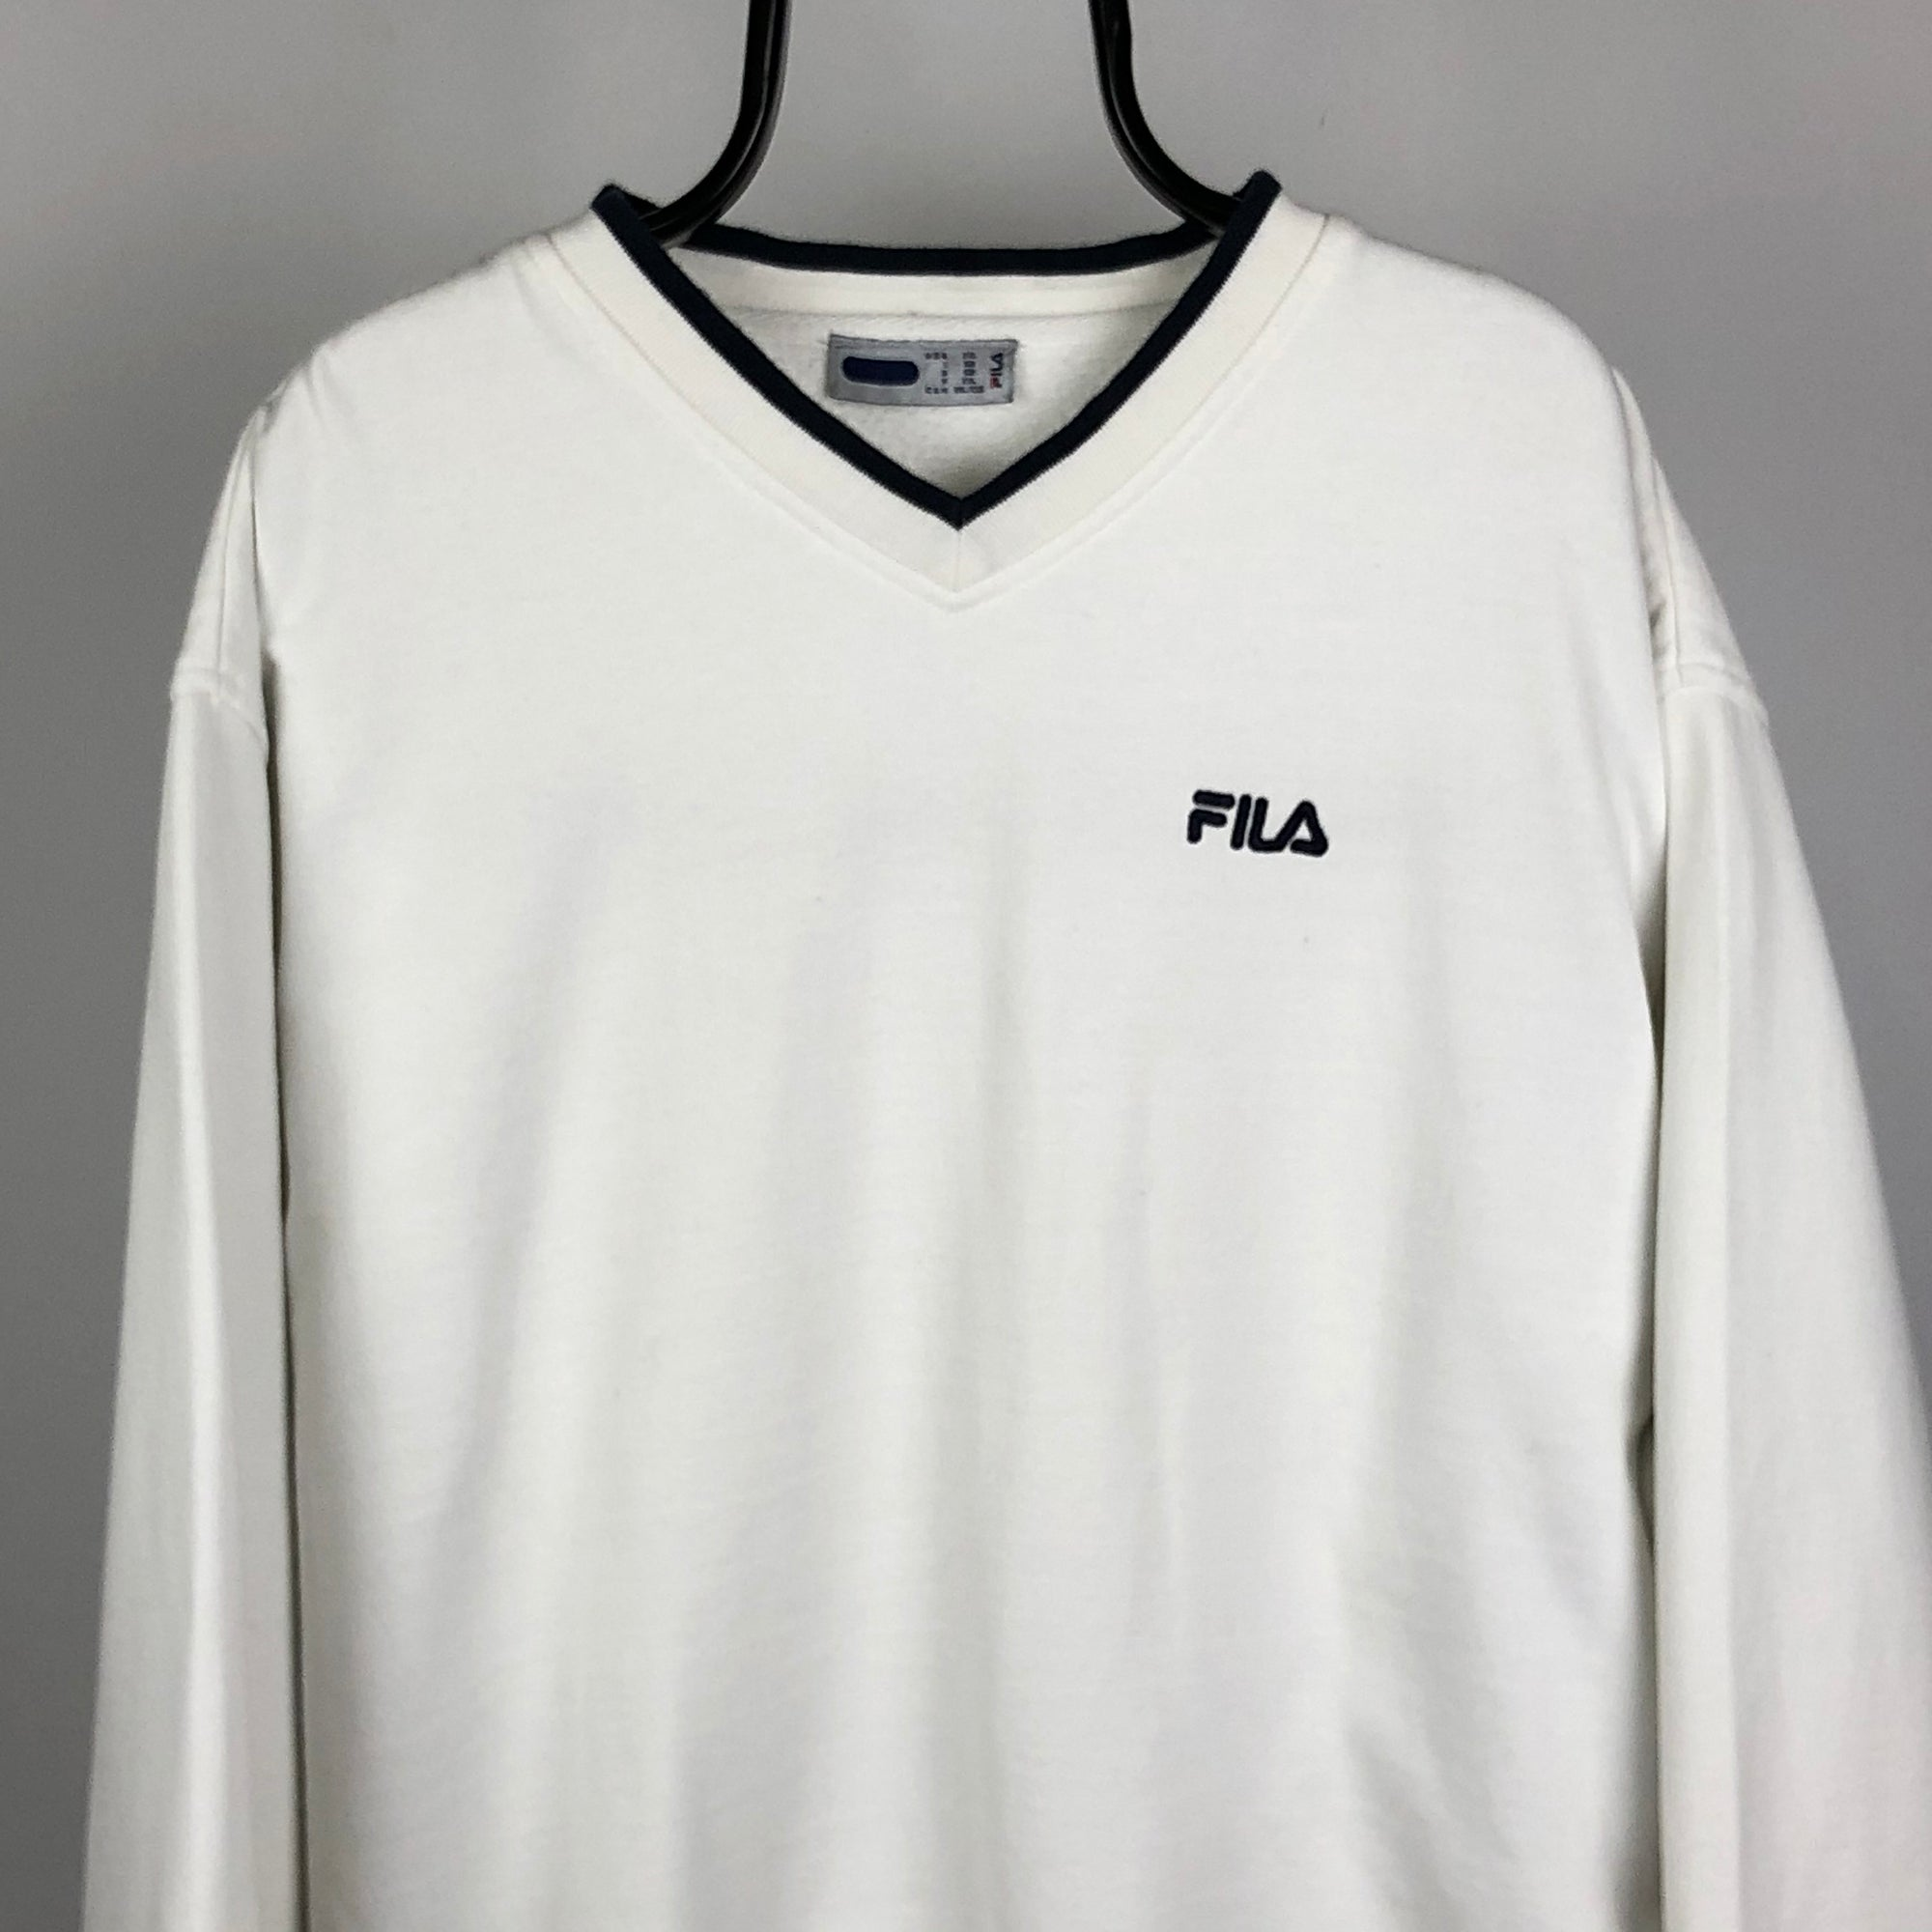 Vintage Fila Embroidered Small Spellout Sweatshirt in White/Navy - Men's XL/Women's XXL